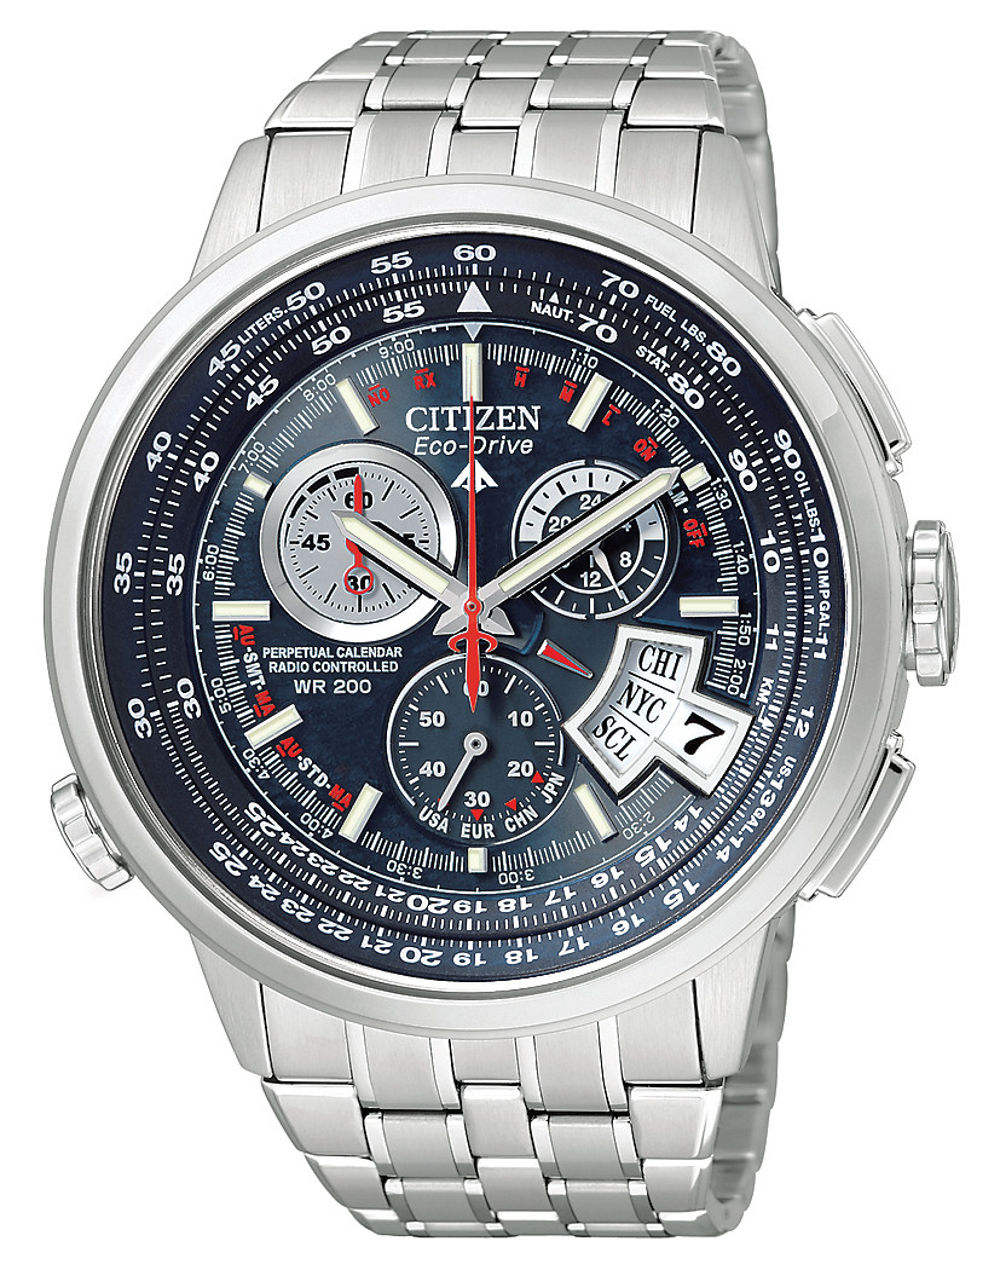 Chrono Time A T In 2021 Watches For Men Citizen Watch Radio Controlled Watches